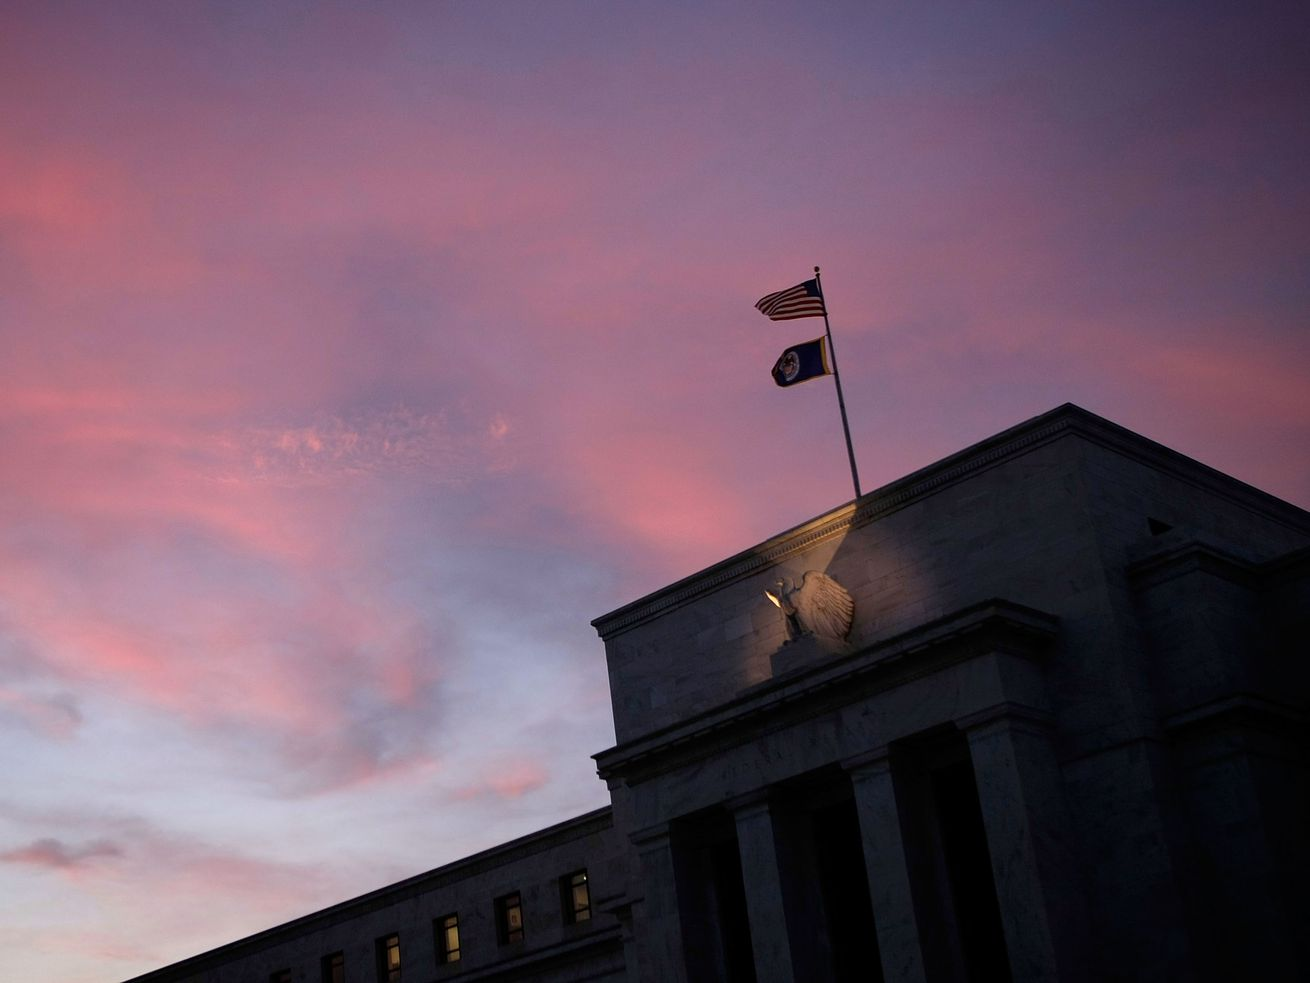 Donald Trump has two vacancies to fill at the Federal Reserve Board of Governors.